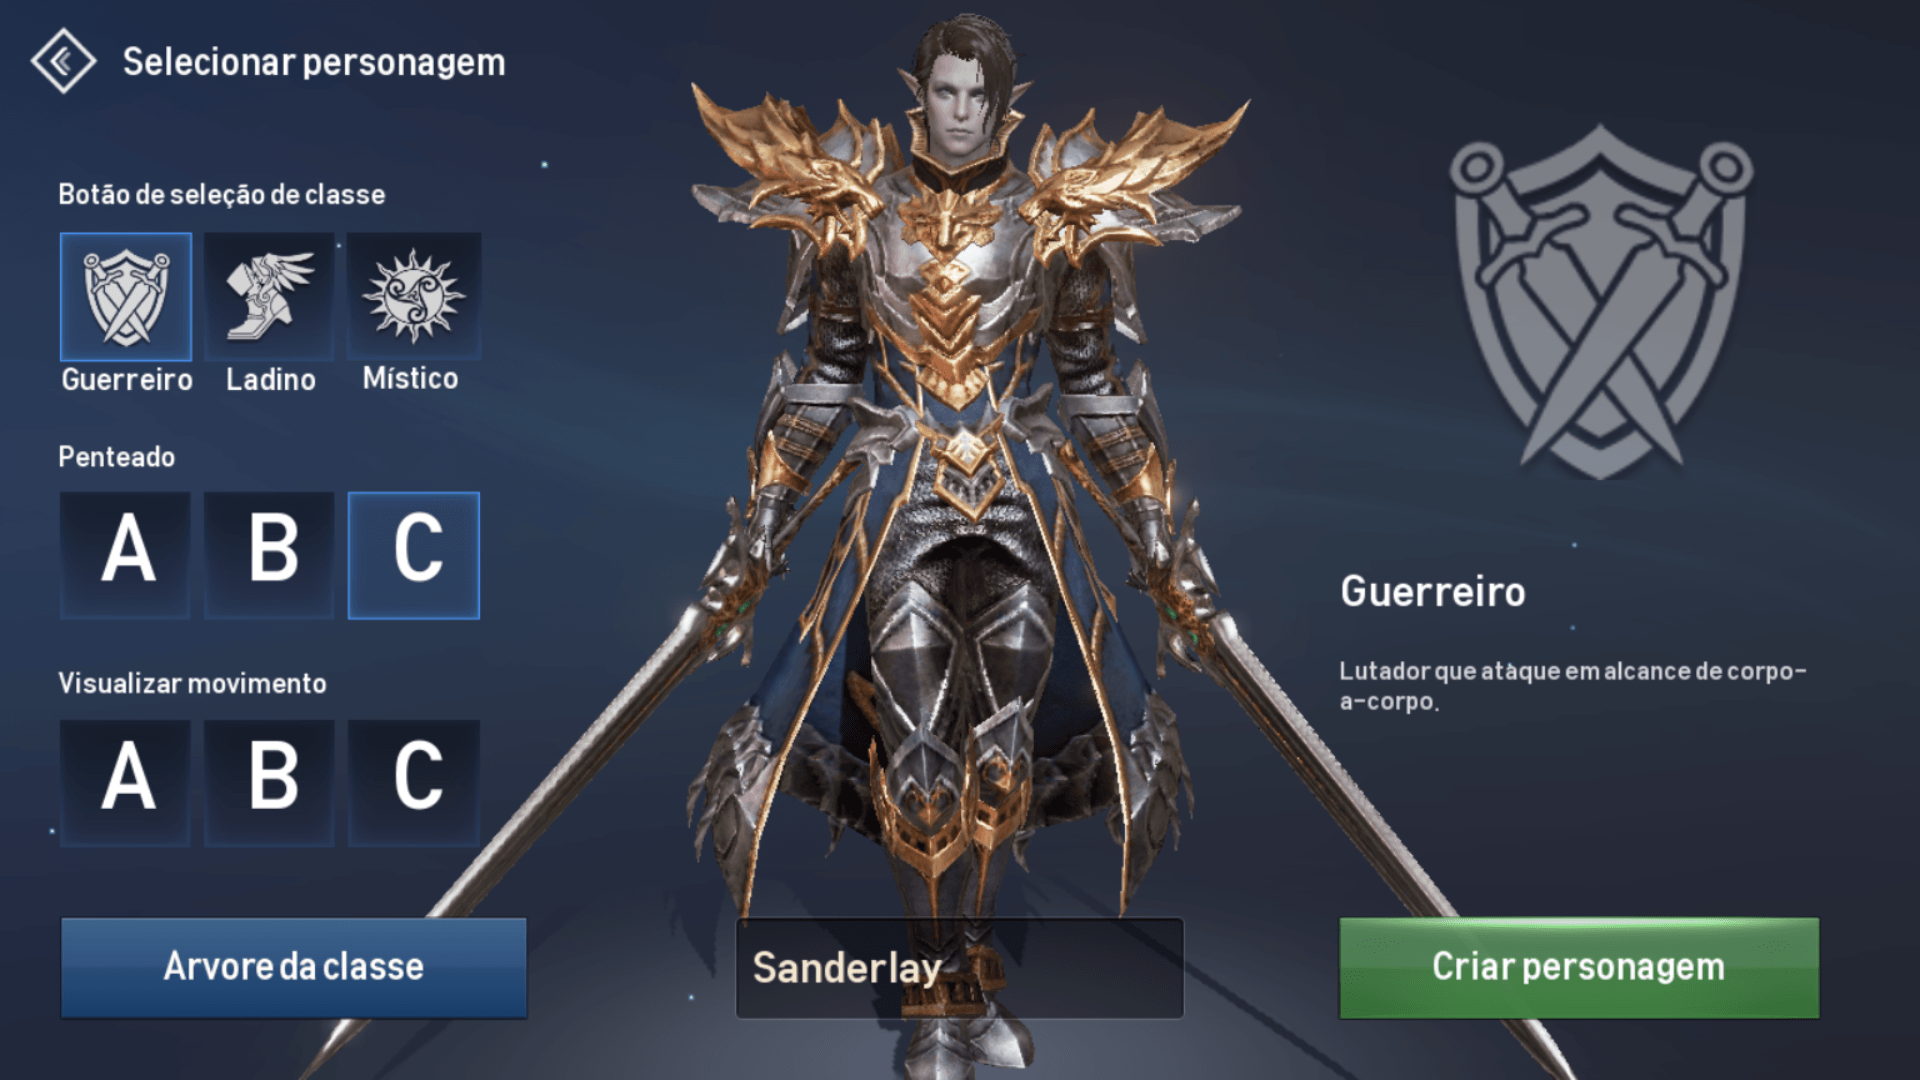 Lineage 2 Top 5 Classes Img 6 Pt